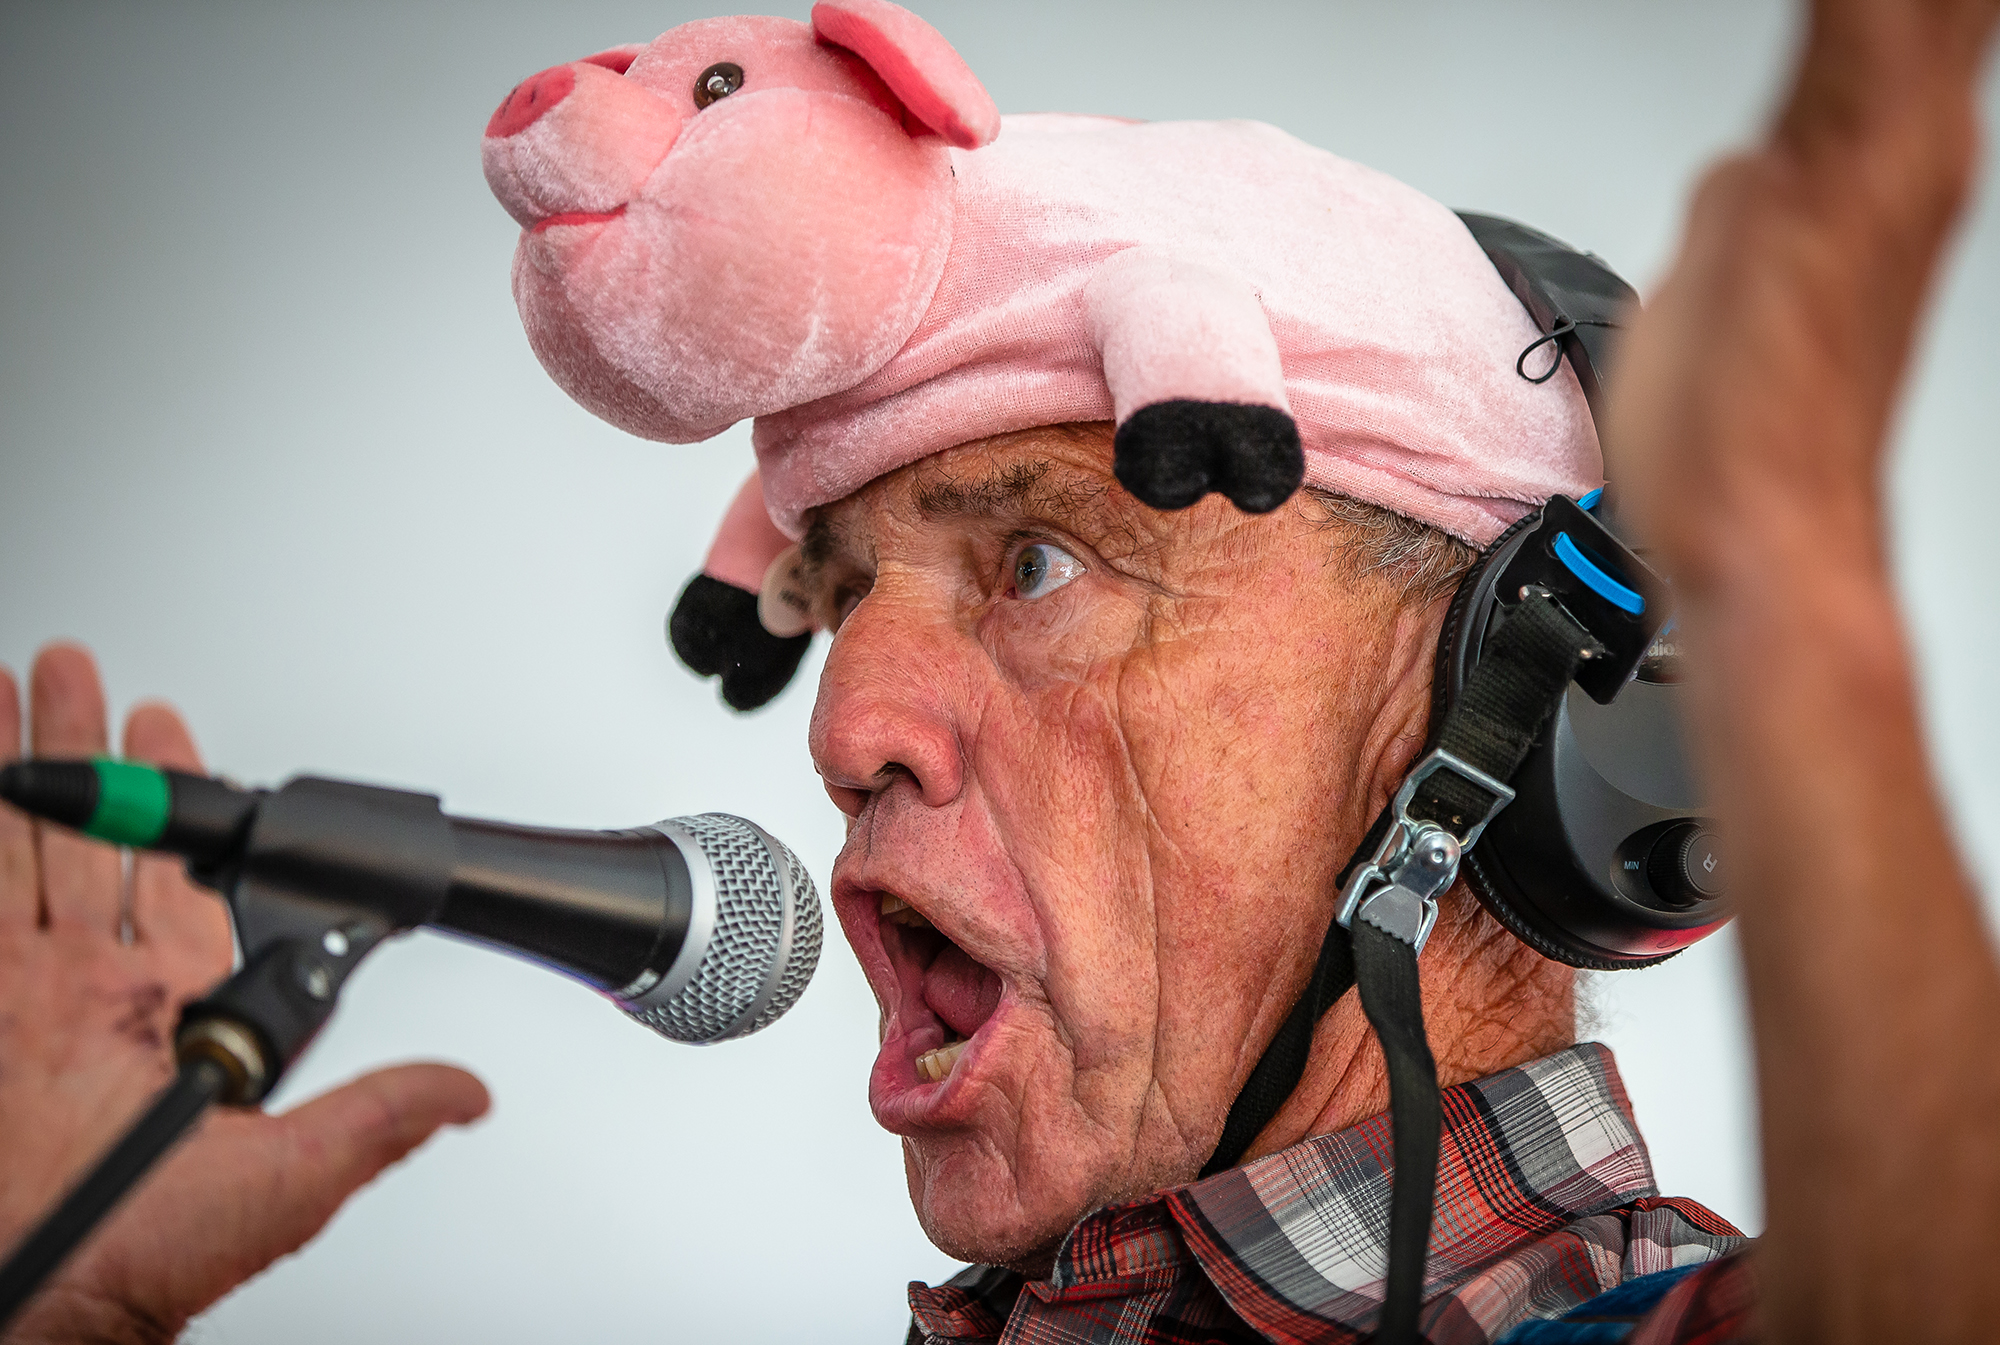 "Chris Karr, of Seymour, Ill., uses his ""Ham Radio"" to call in a hog while competing during the Husband and Hog Calling contest inside the Ag Tent at the Illinois State Fairgrounds, Sunday, Aug. 12, 2018, in Springfield, Ill. Karr finished second in the competition to Andrew Metheney, of Georgetown, Ill., won the contest for the third year in a row. Shelly Flickinger won the Husband Calling Contest and Cody Covalesky, of Greenville, Ill., won the first ever Duck Calling Contest.  [Justin L. Fowler/The State Journal-Register]"